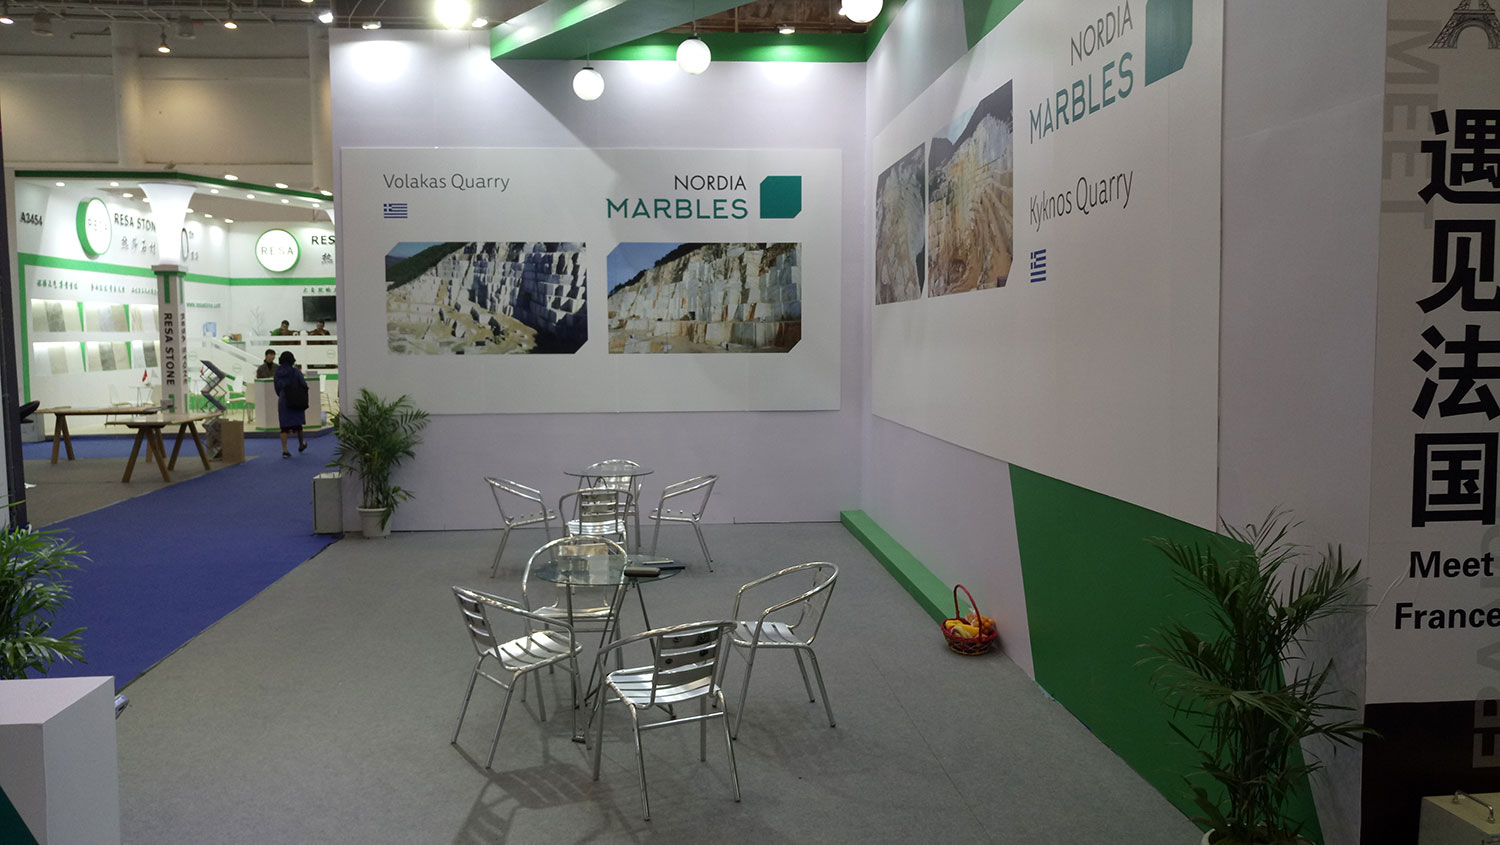 NORDIA MARBLES participated in the China Xiamen International Stone Fair 2018